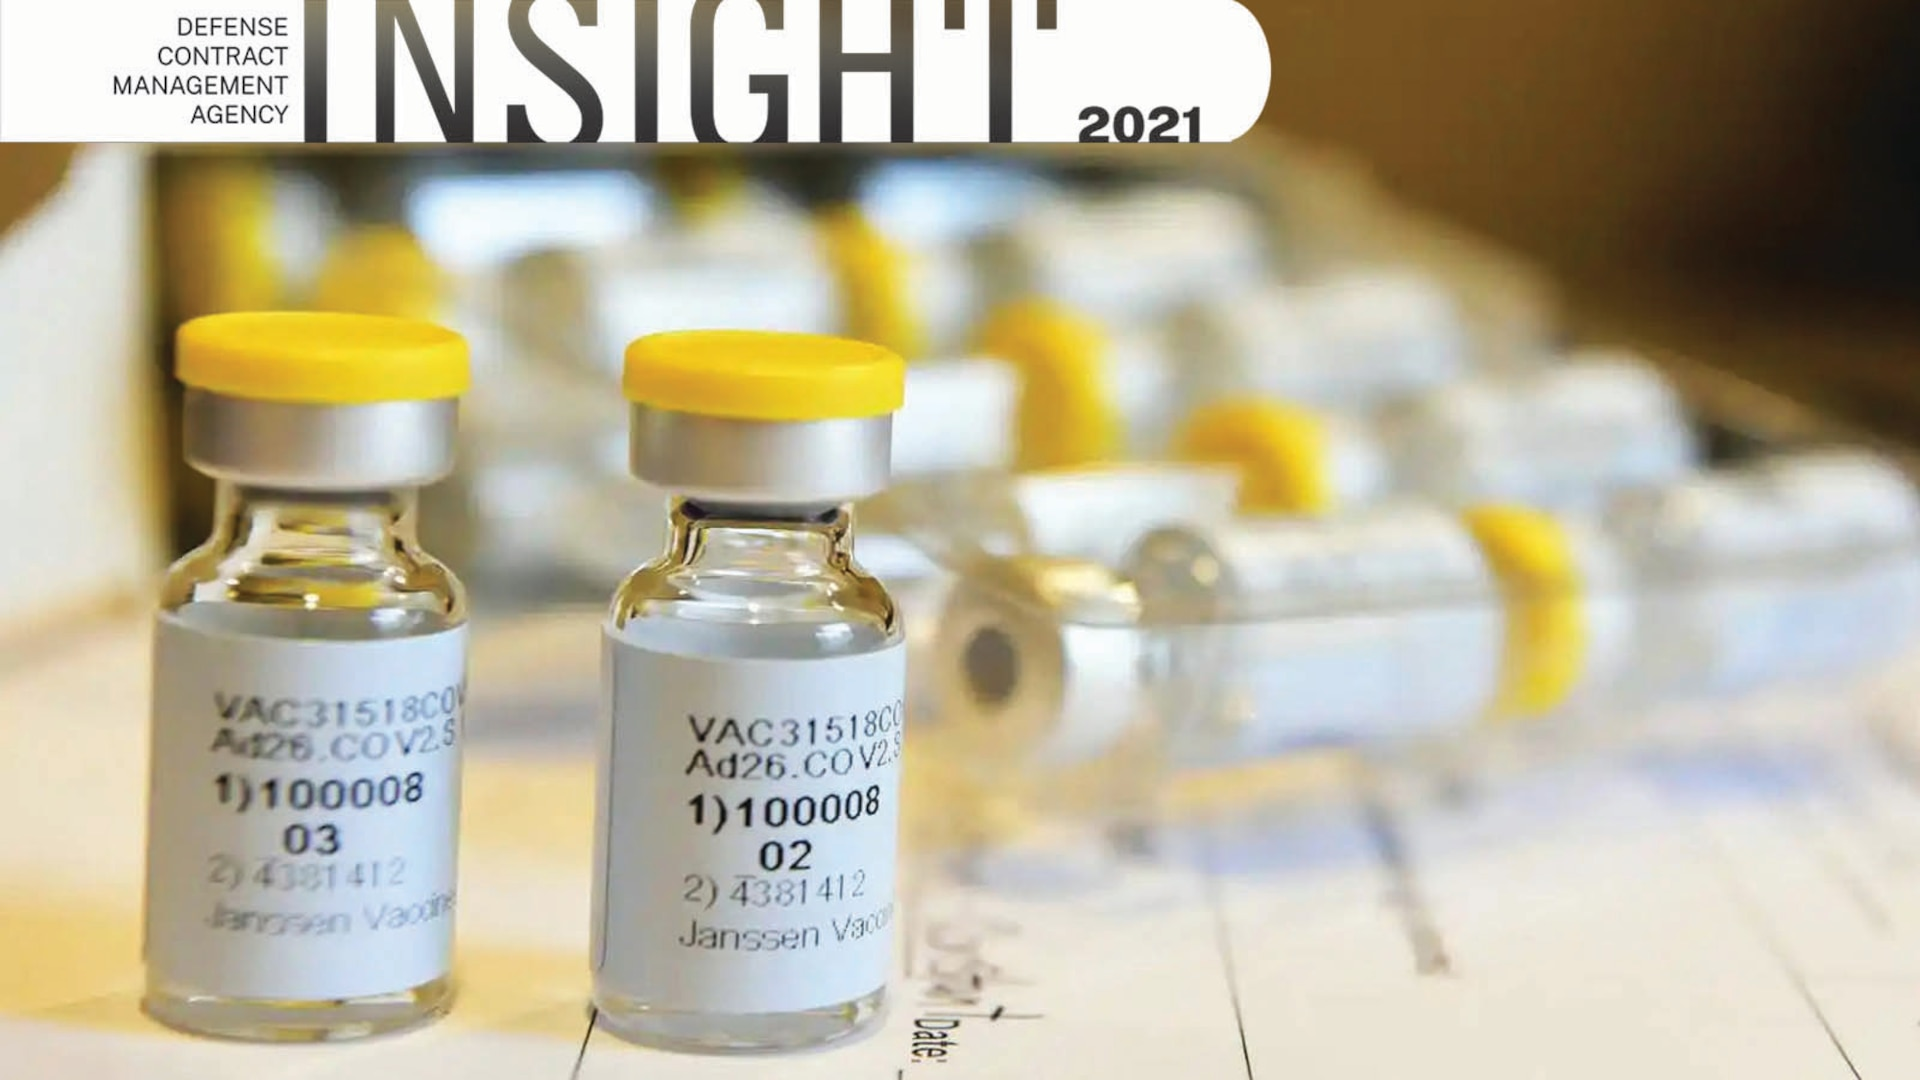 Close-up picture of COVID-19 vaccine vials.